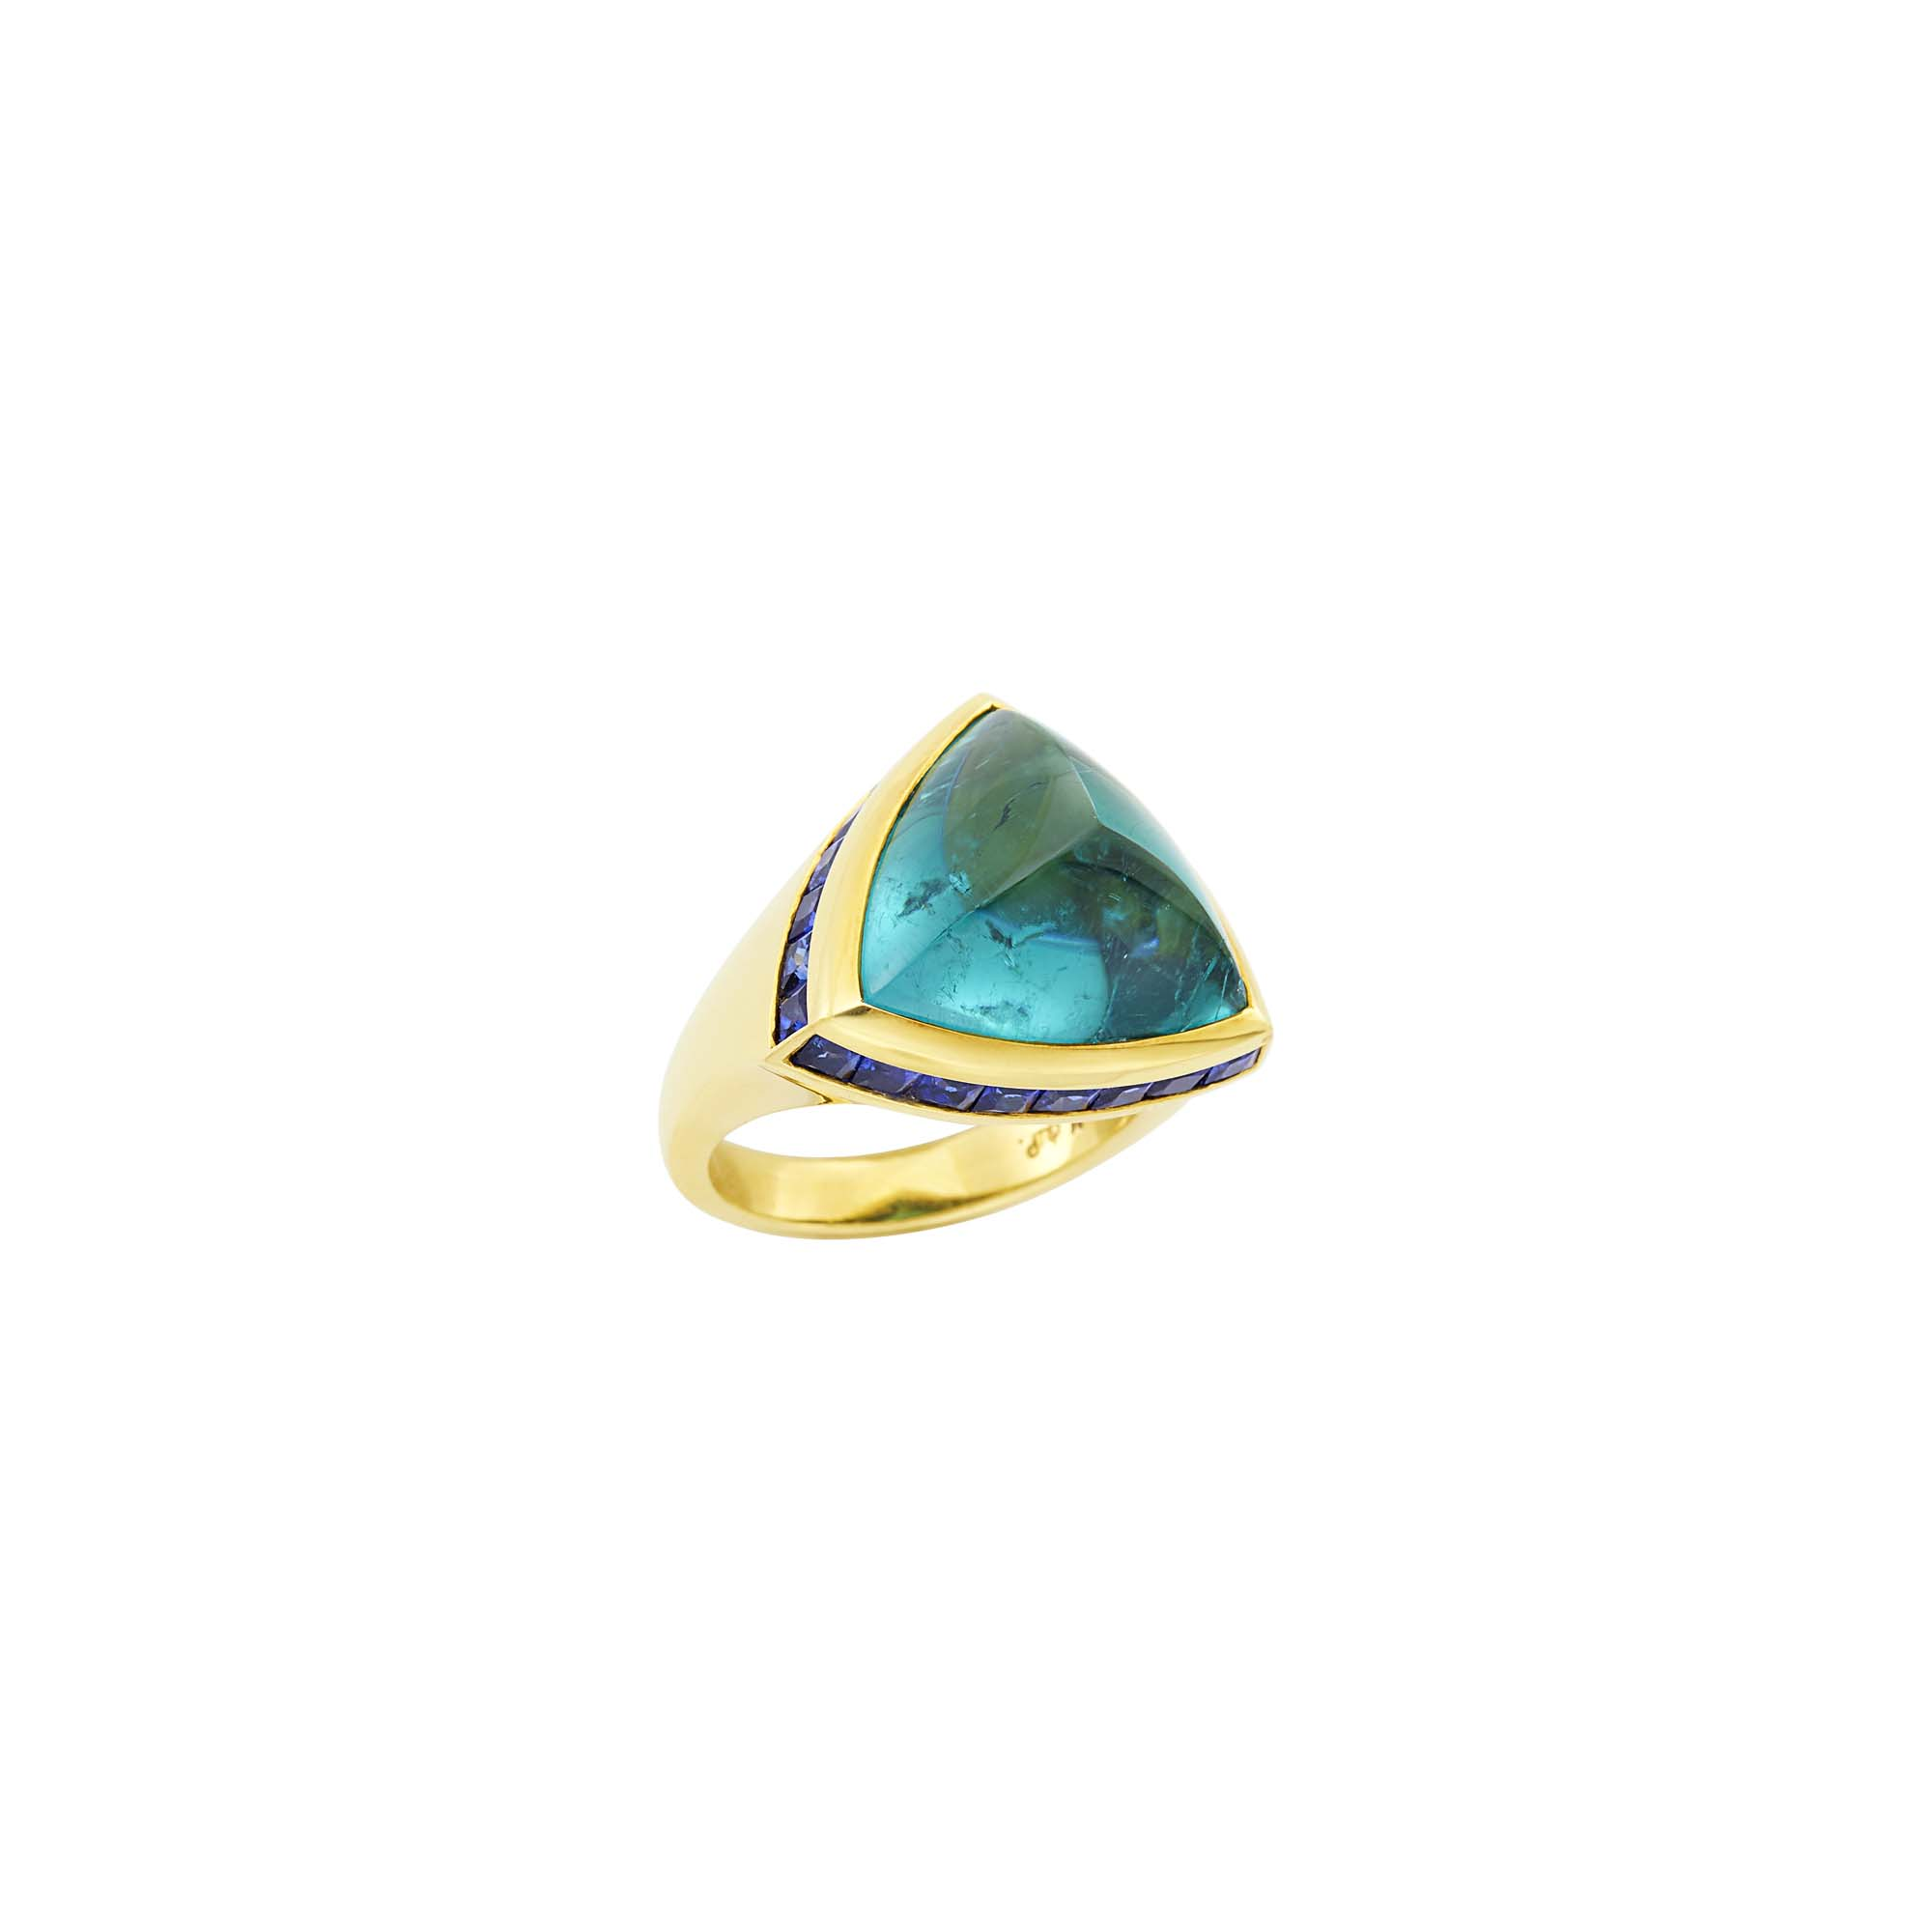 Lot image - Gold, Cabochon Tourmaline and Sapphire Ring